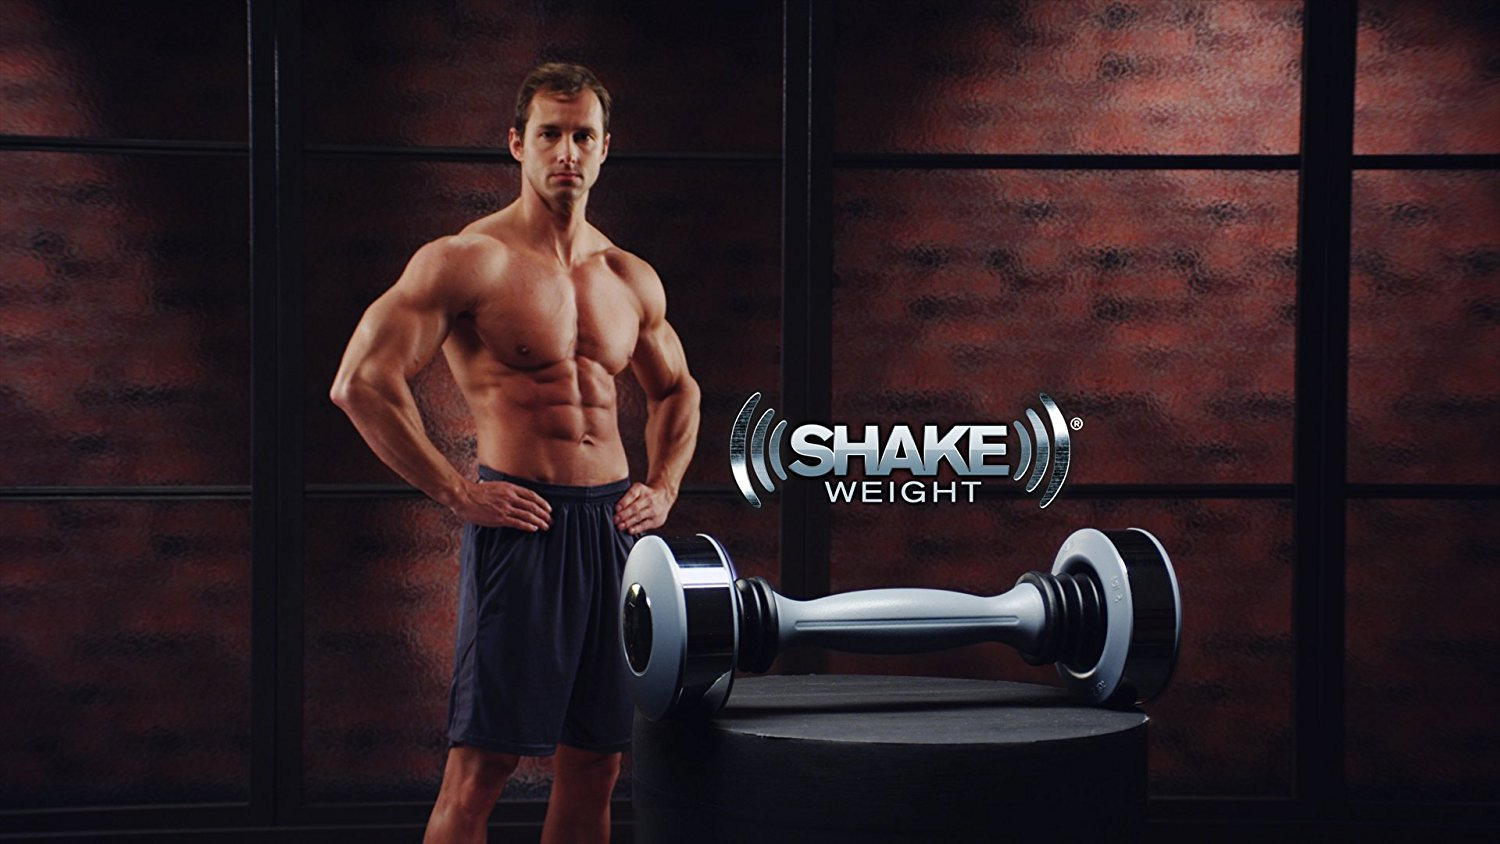 Shake Weight for Men Increases Muscle More Price in Pakistan